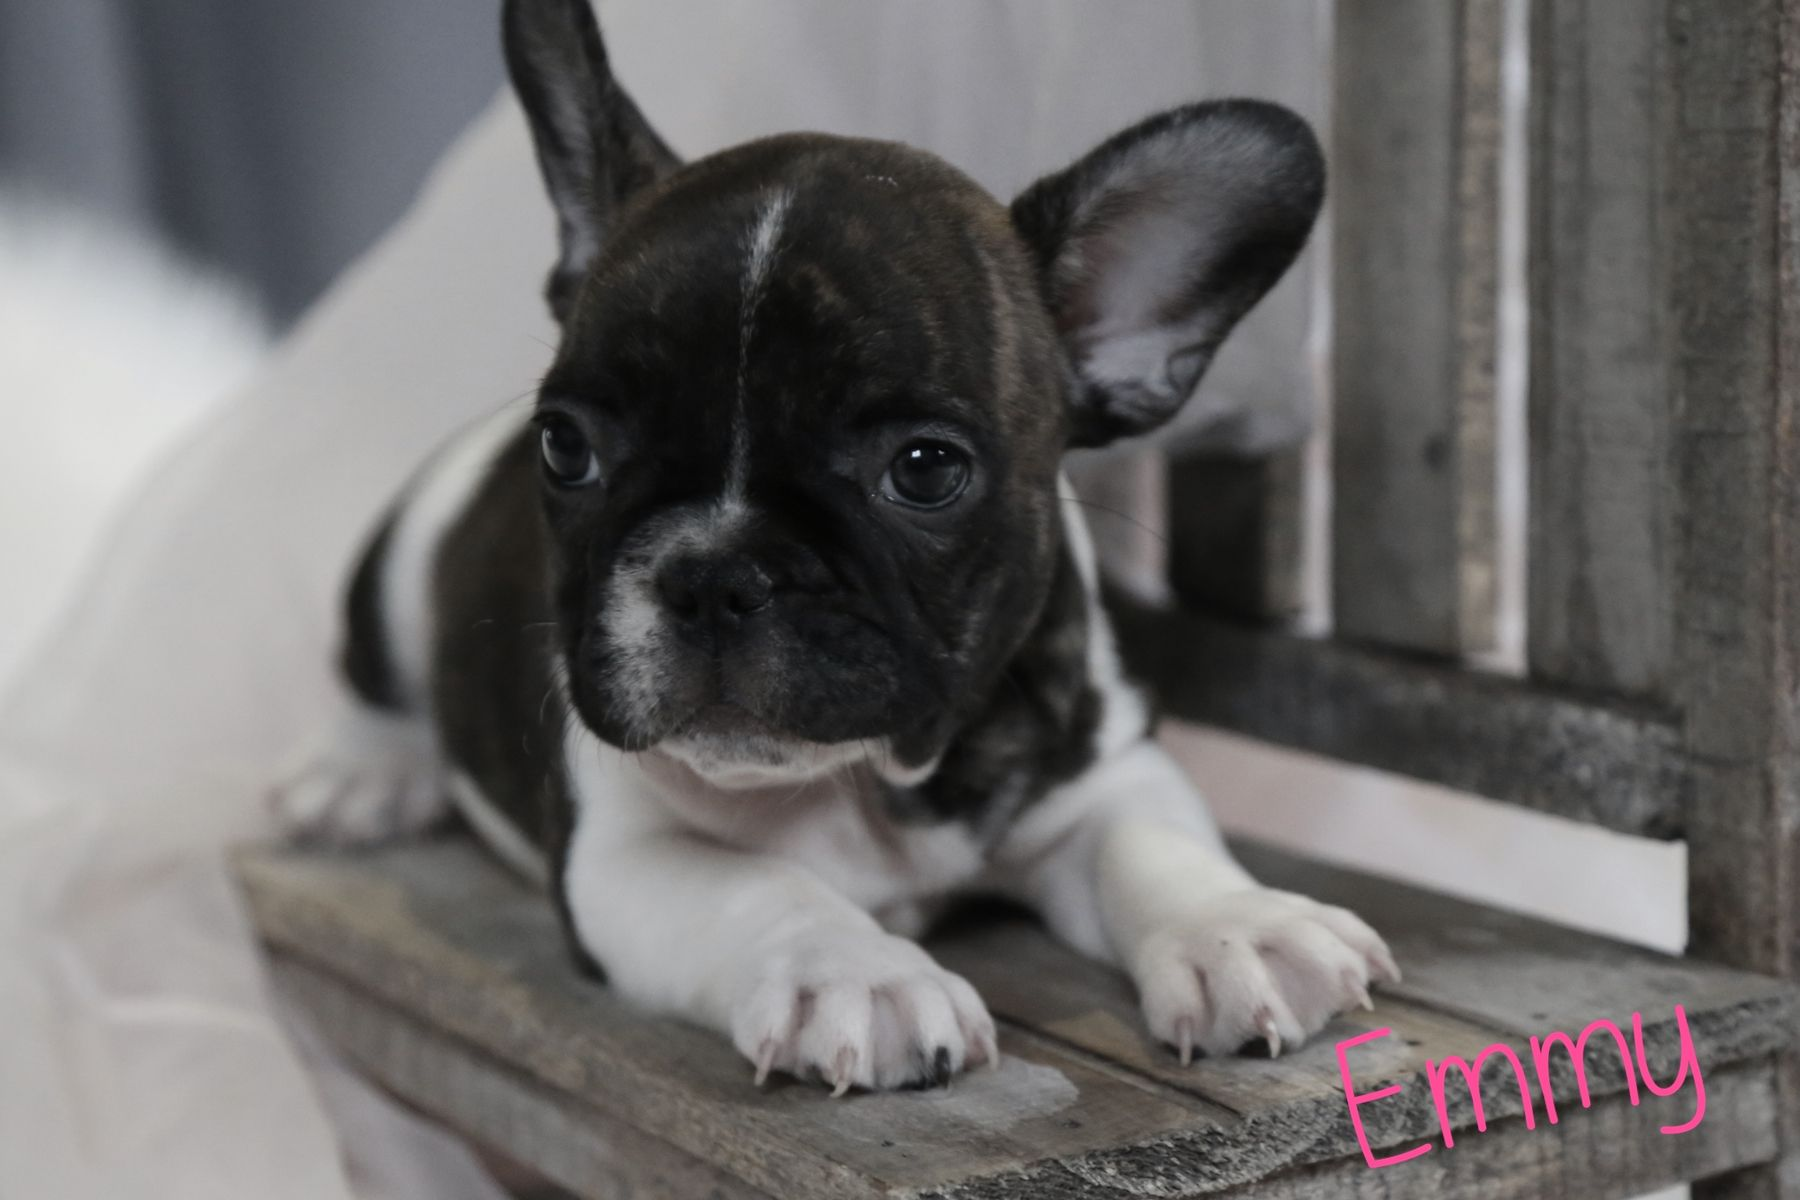 Emmy Female French Bulldog from Ewing, Illinois. Find